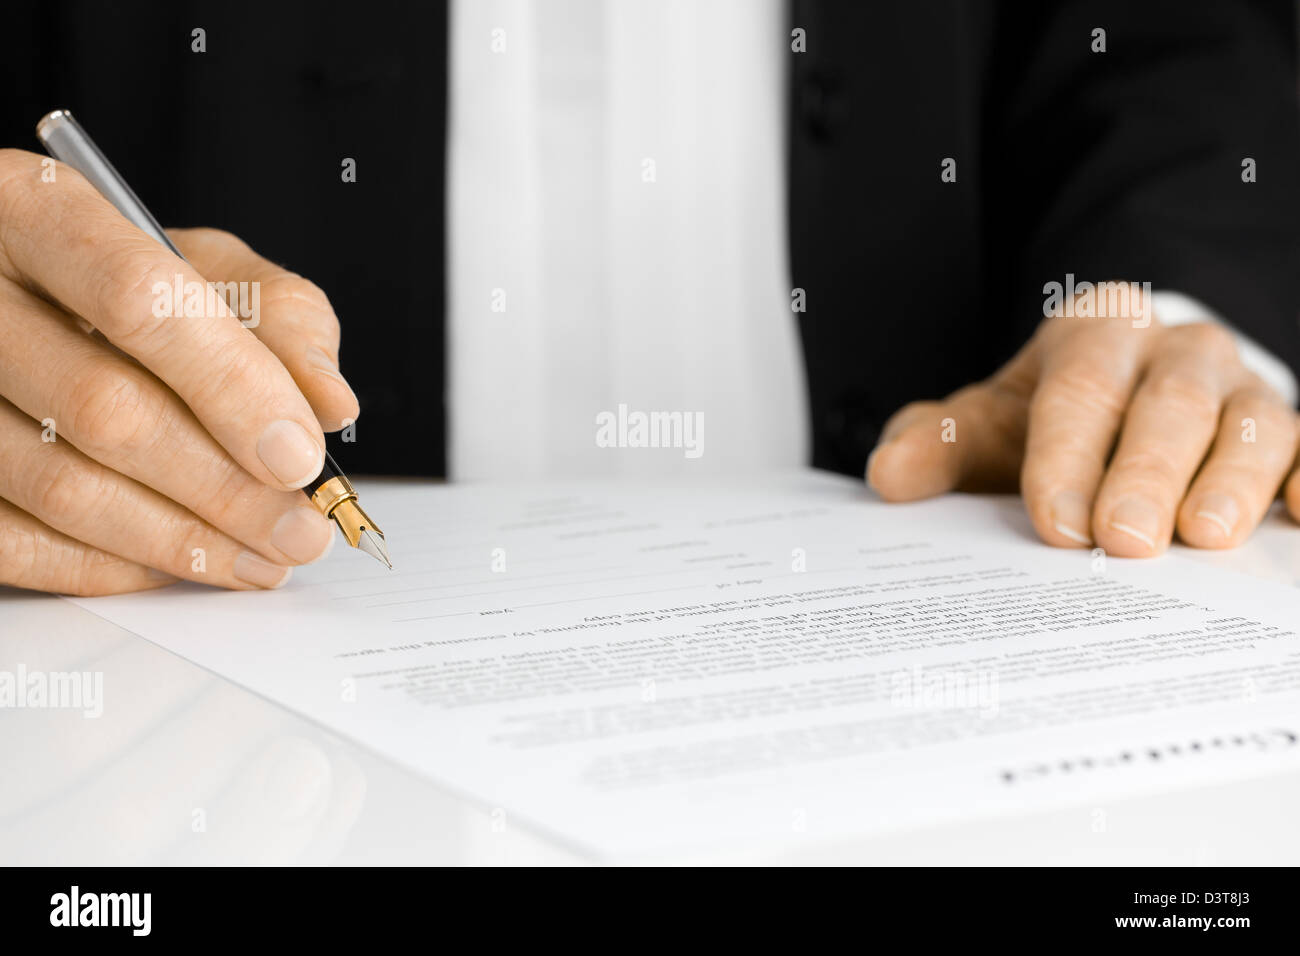 Hand Signing Contract with Fountain Pen - Stock Image